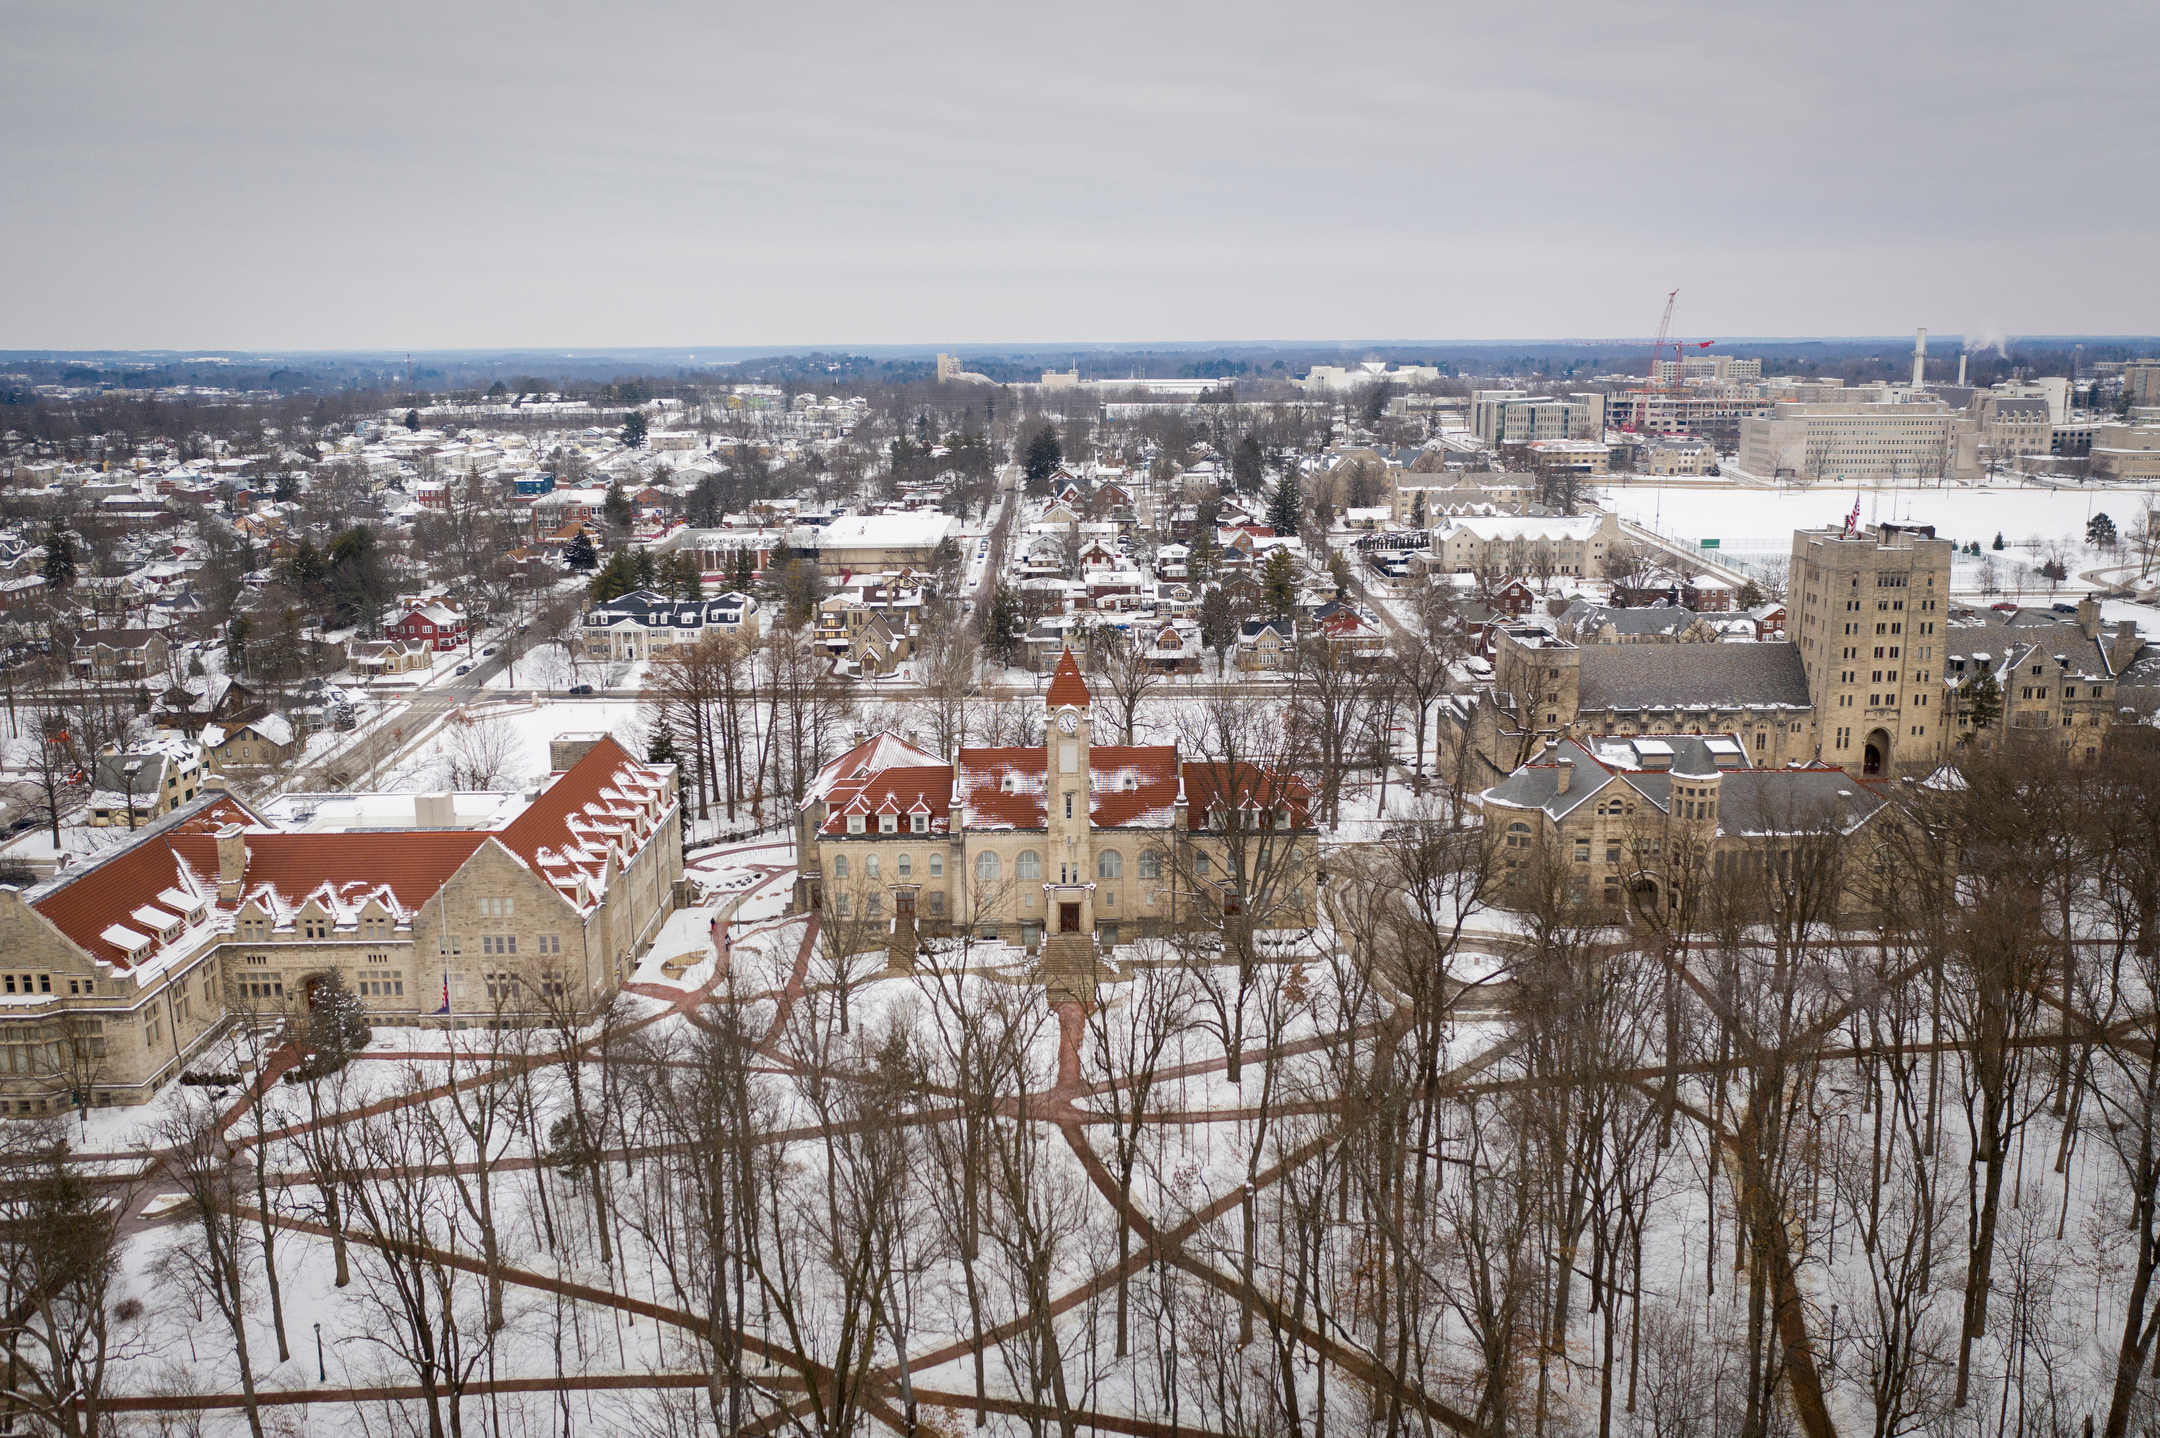 A snow-covered Old Crescent is pictured from the air at Indiana University Bloomington on Friday, Feb. 12, 2021. Pictured at center is the Student Building clock tower.